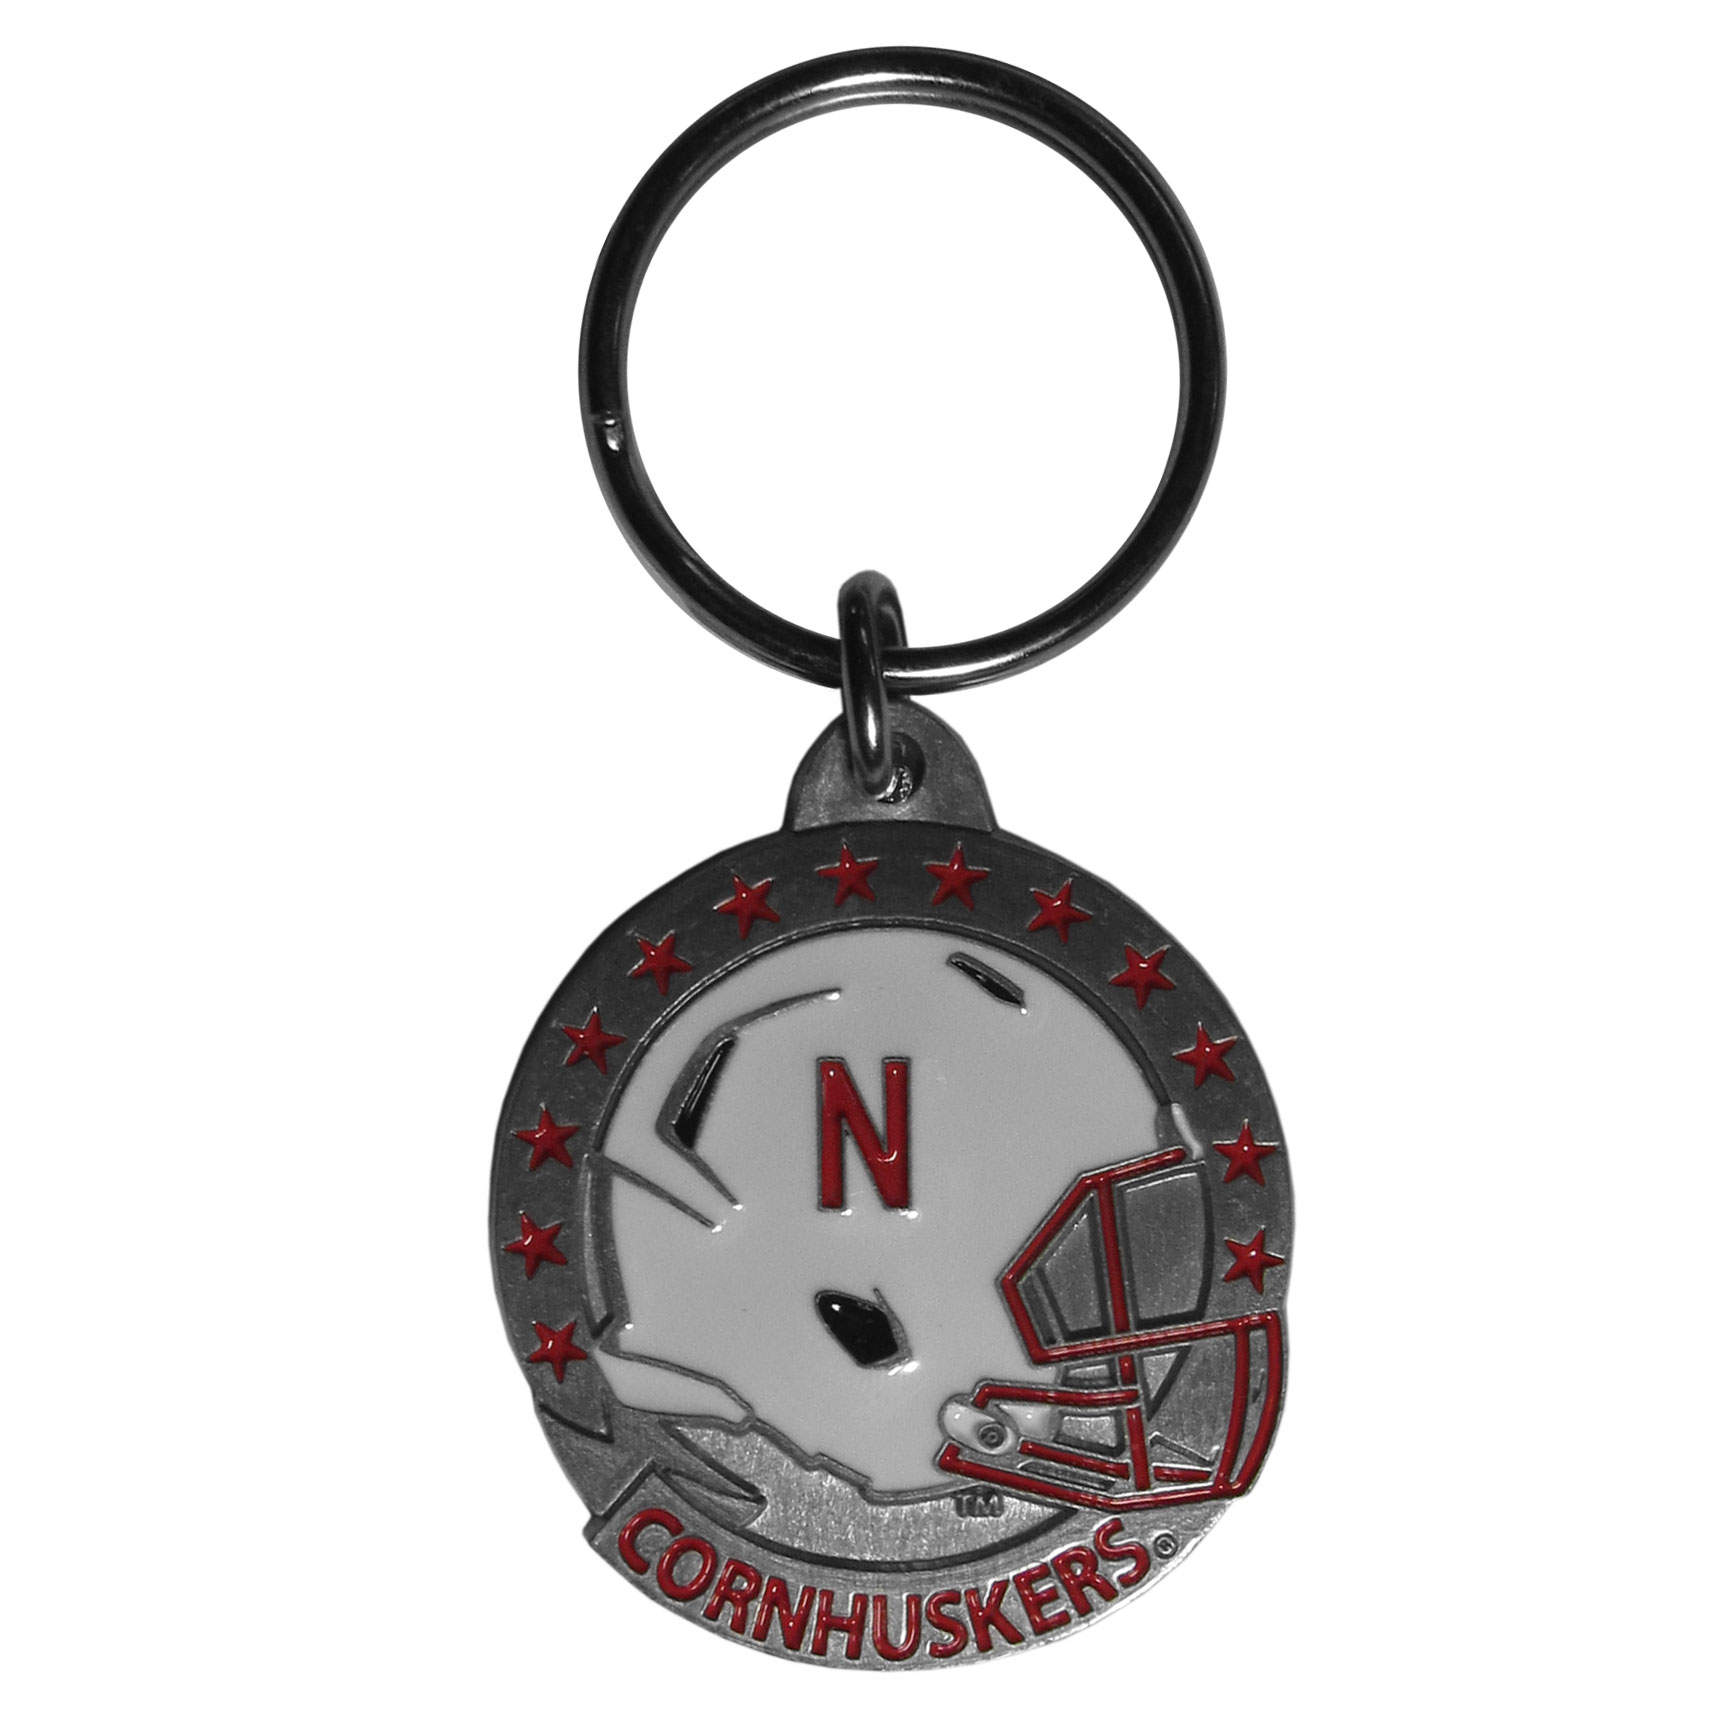 Nebraska Cornhuskers College Key Chain -  college team logo key ring is sculpted and enameled. A great way to show school spirit! Check out our entire line of  collegiate key rings! Thank you for shopping with CrazedOutSports.com